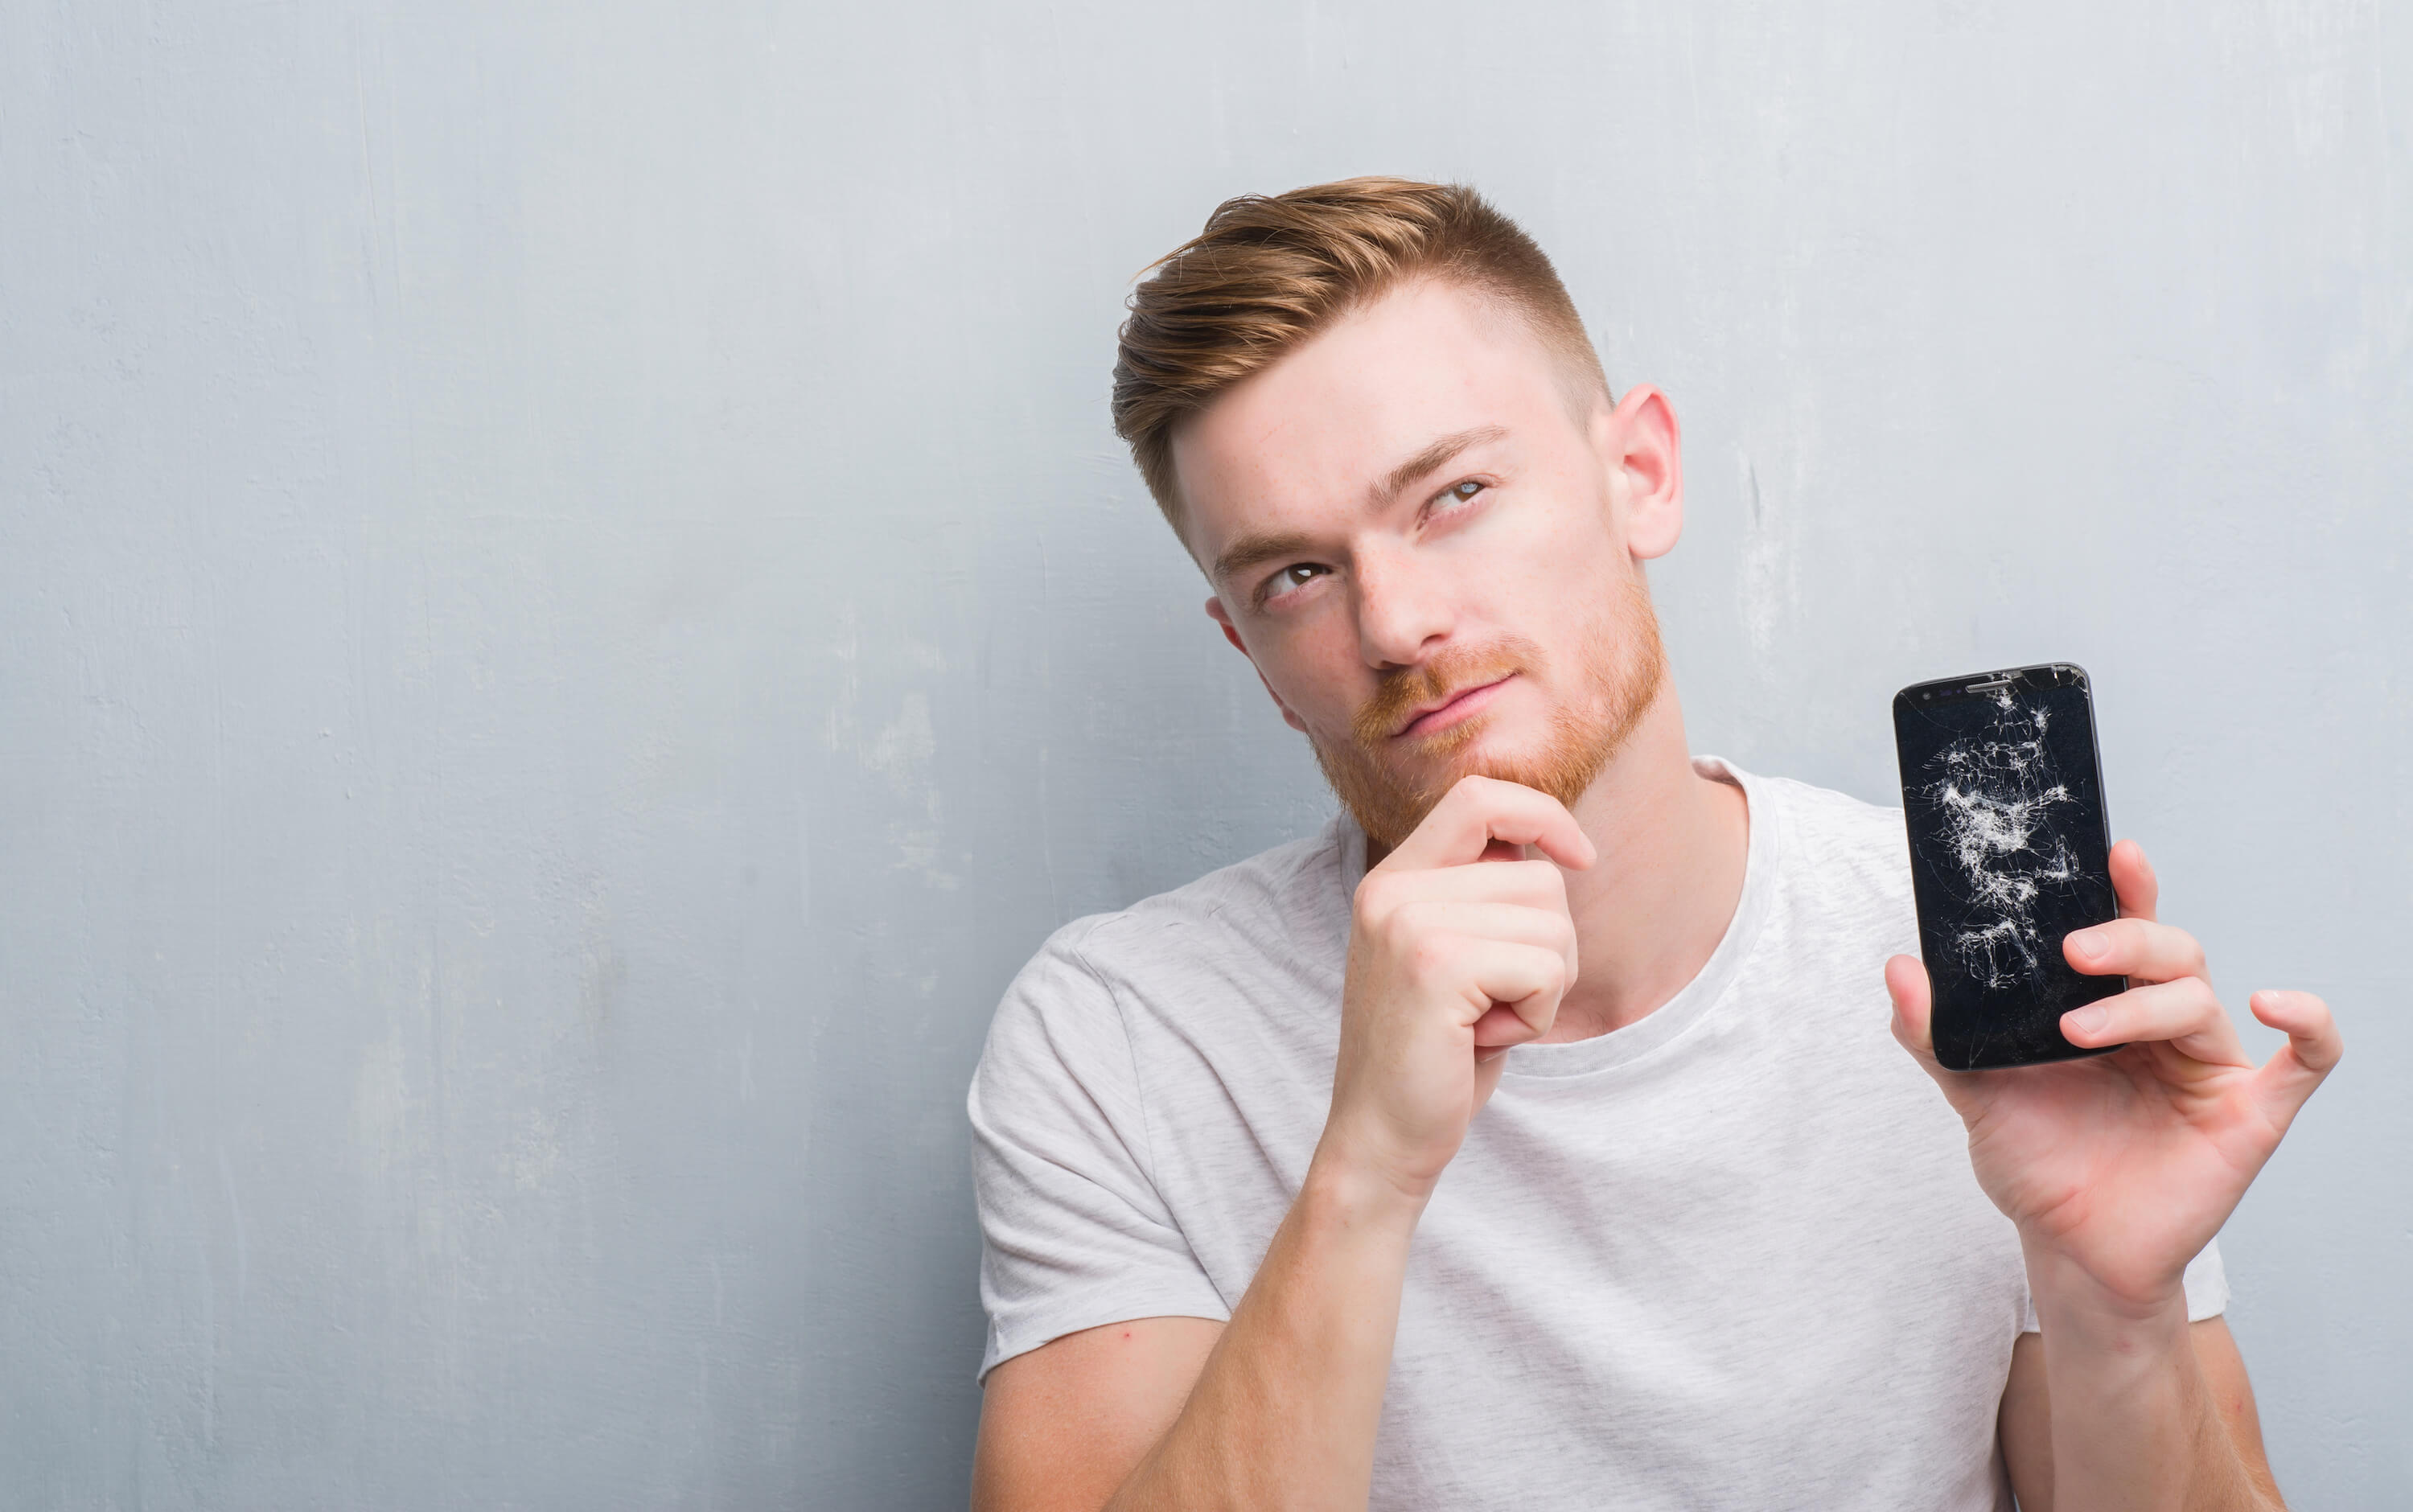 man wondering where to sell cracked iPhone online for cash